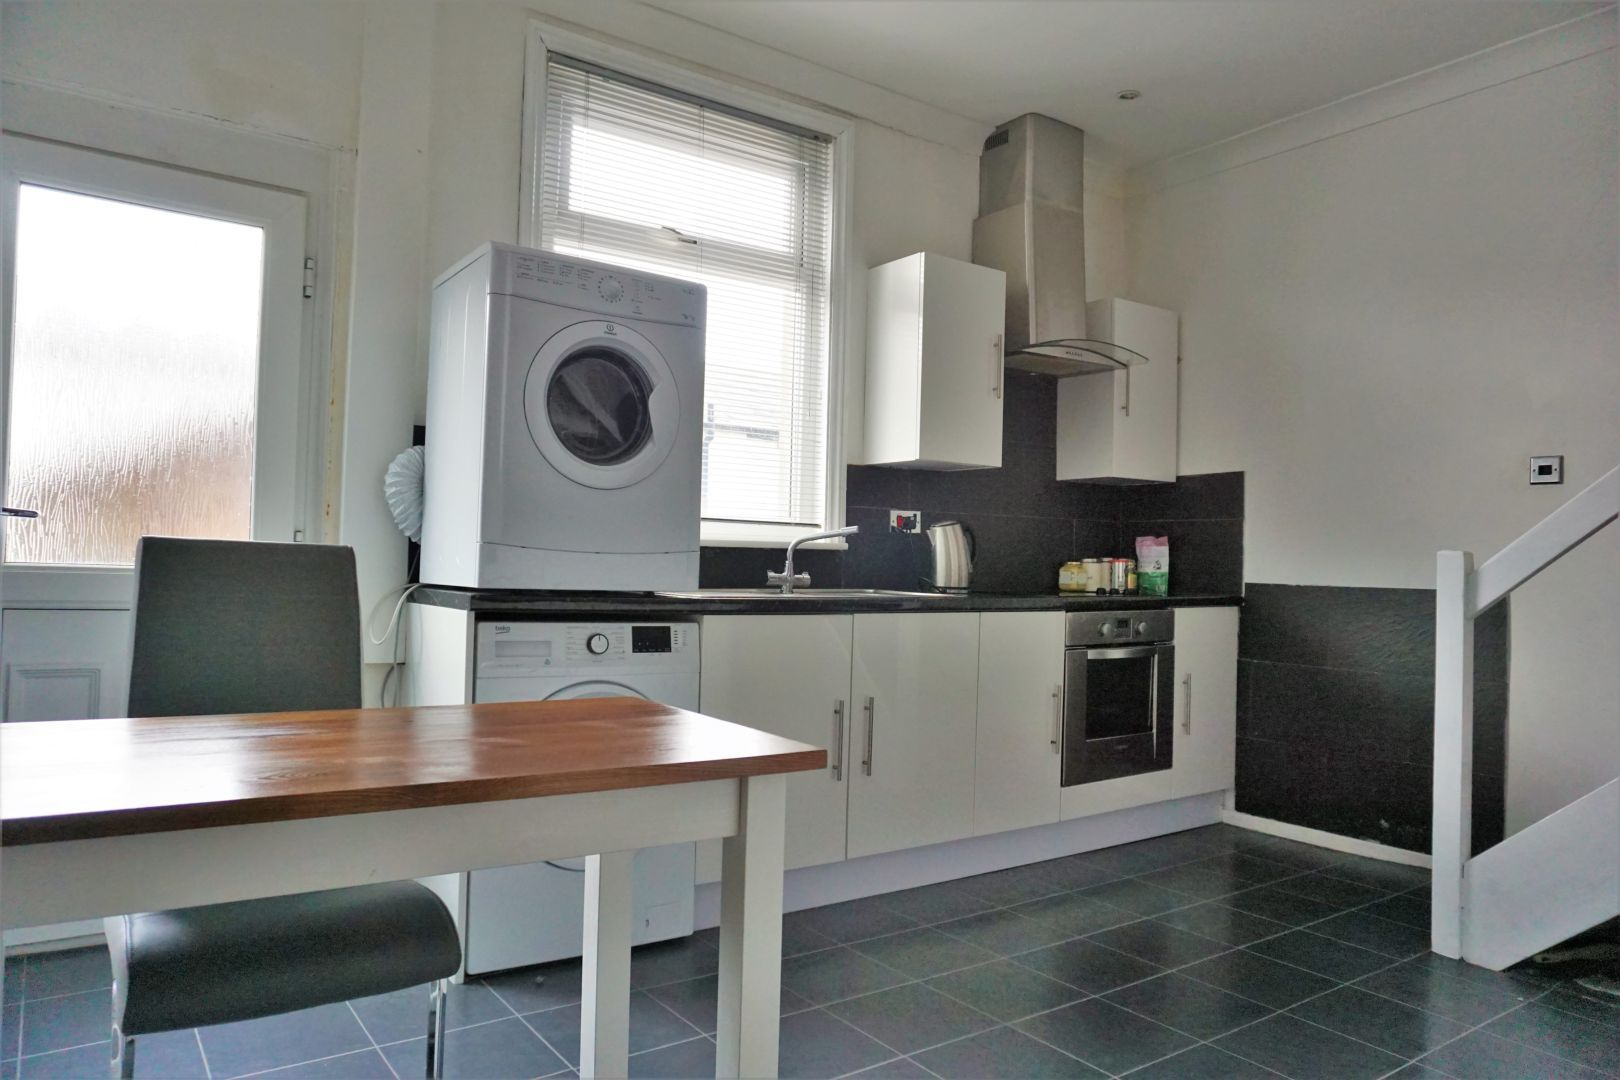 Property photo 1 of 4. Kitchen/Diner